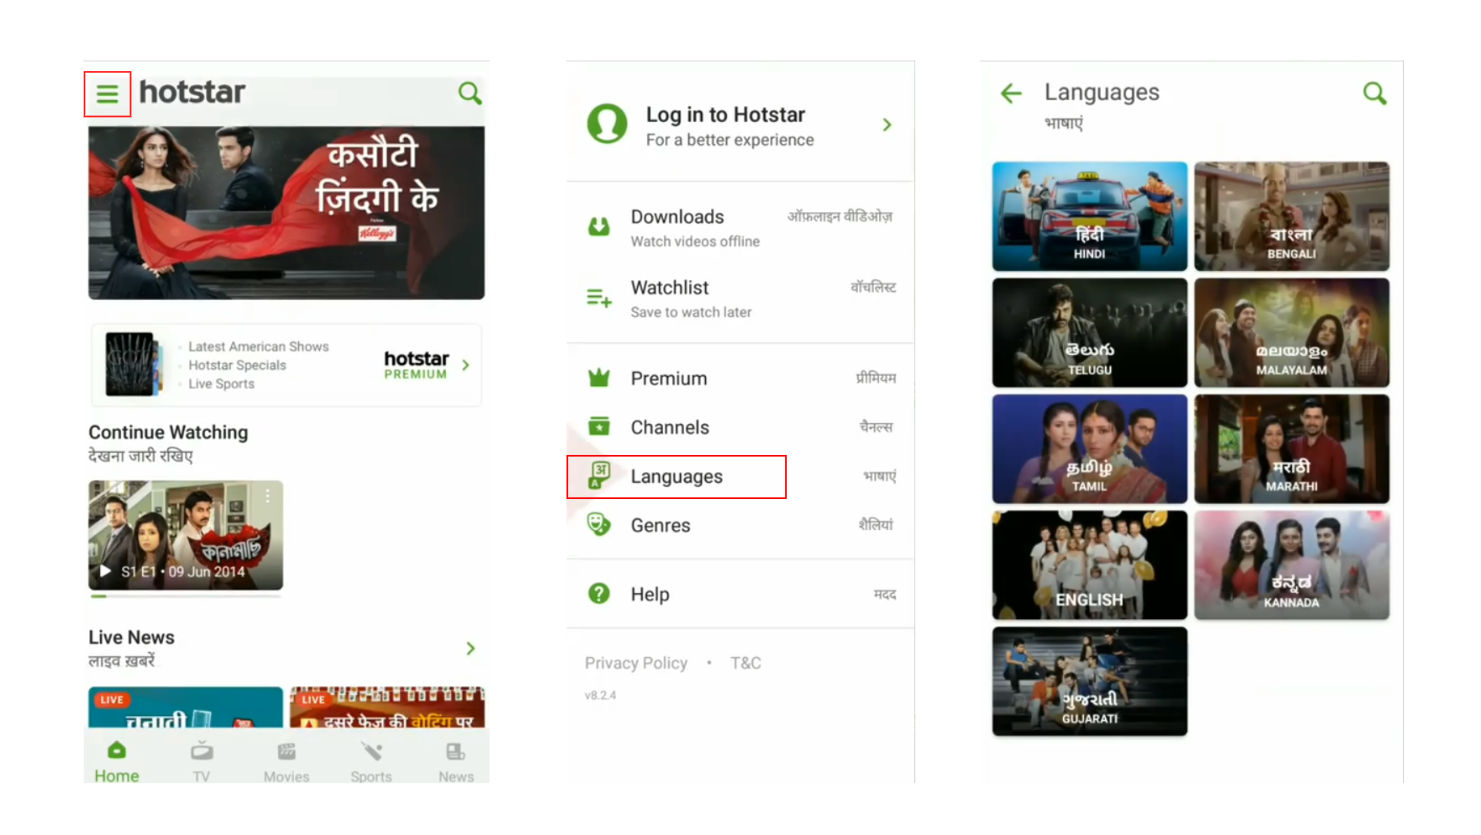 How To Change Language Settings In Hotstar